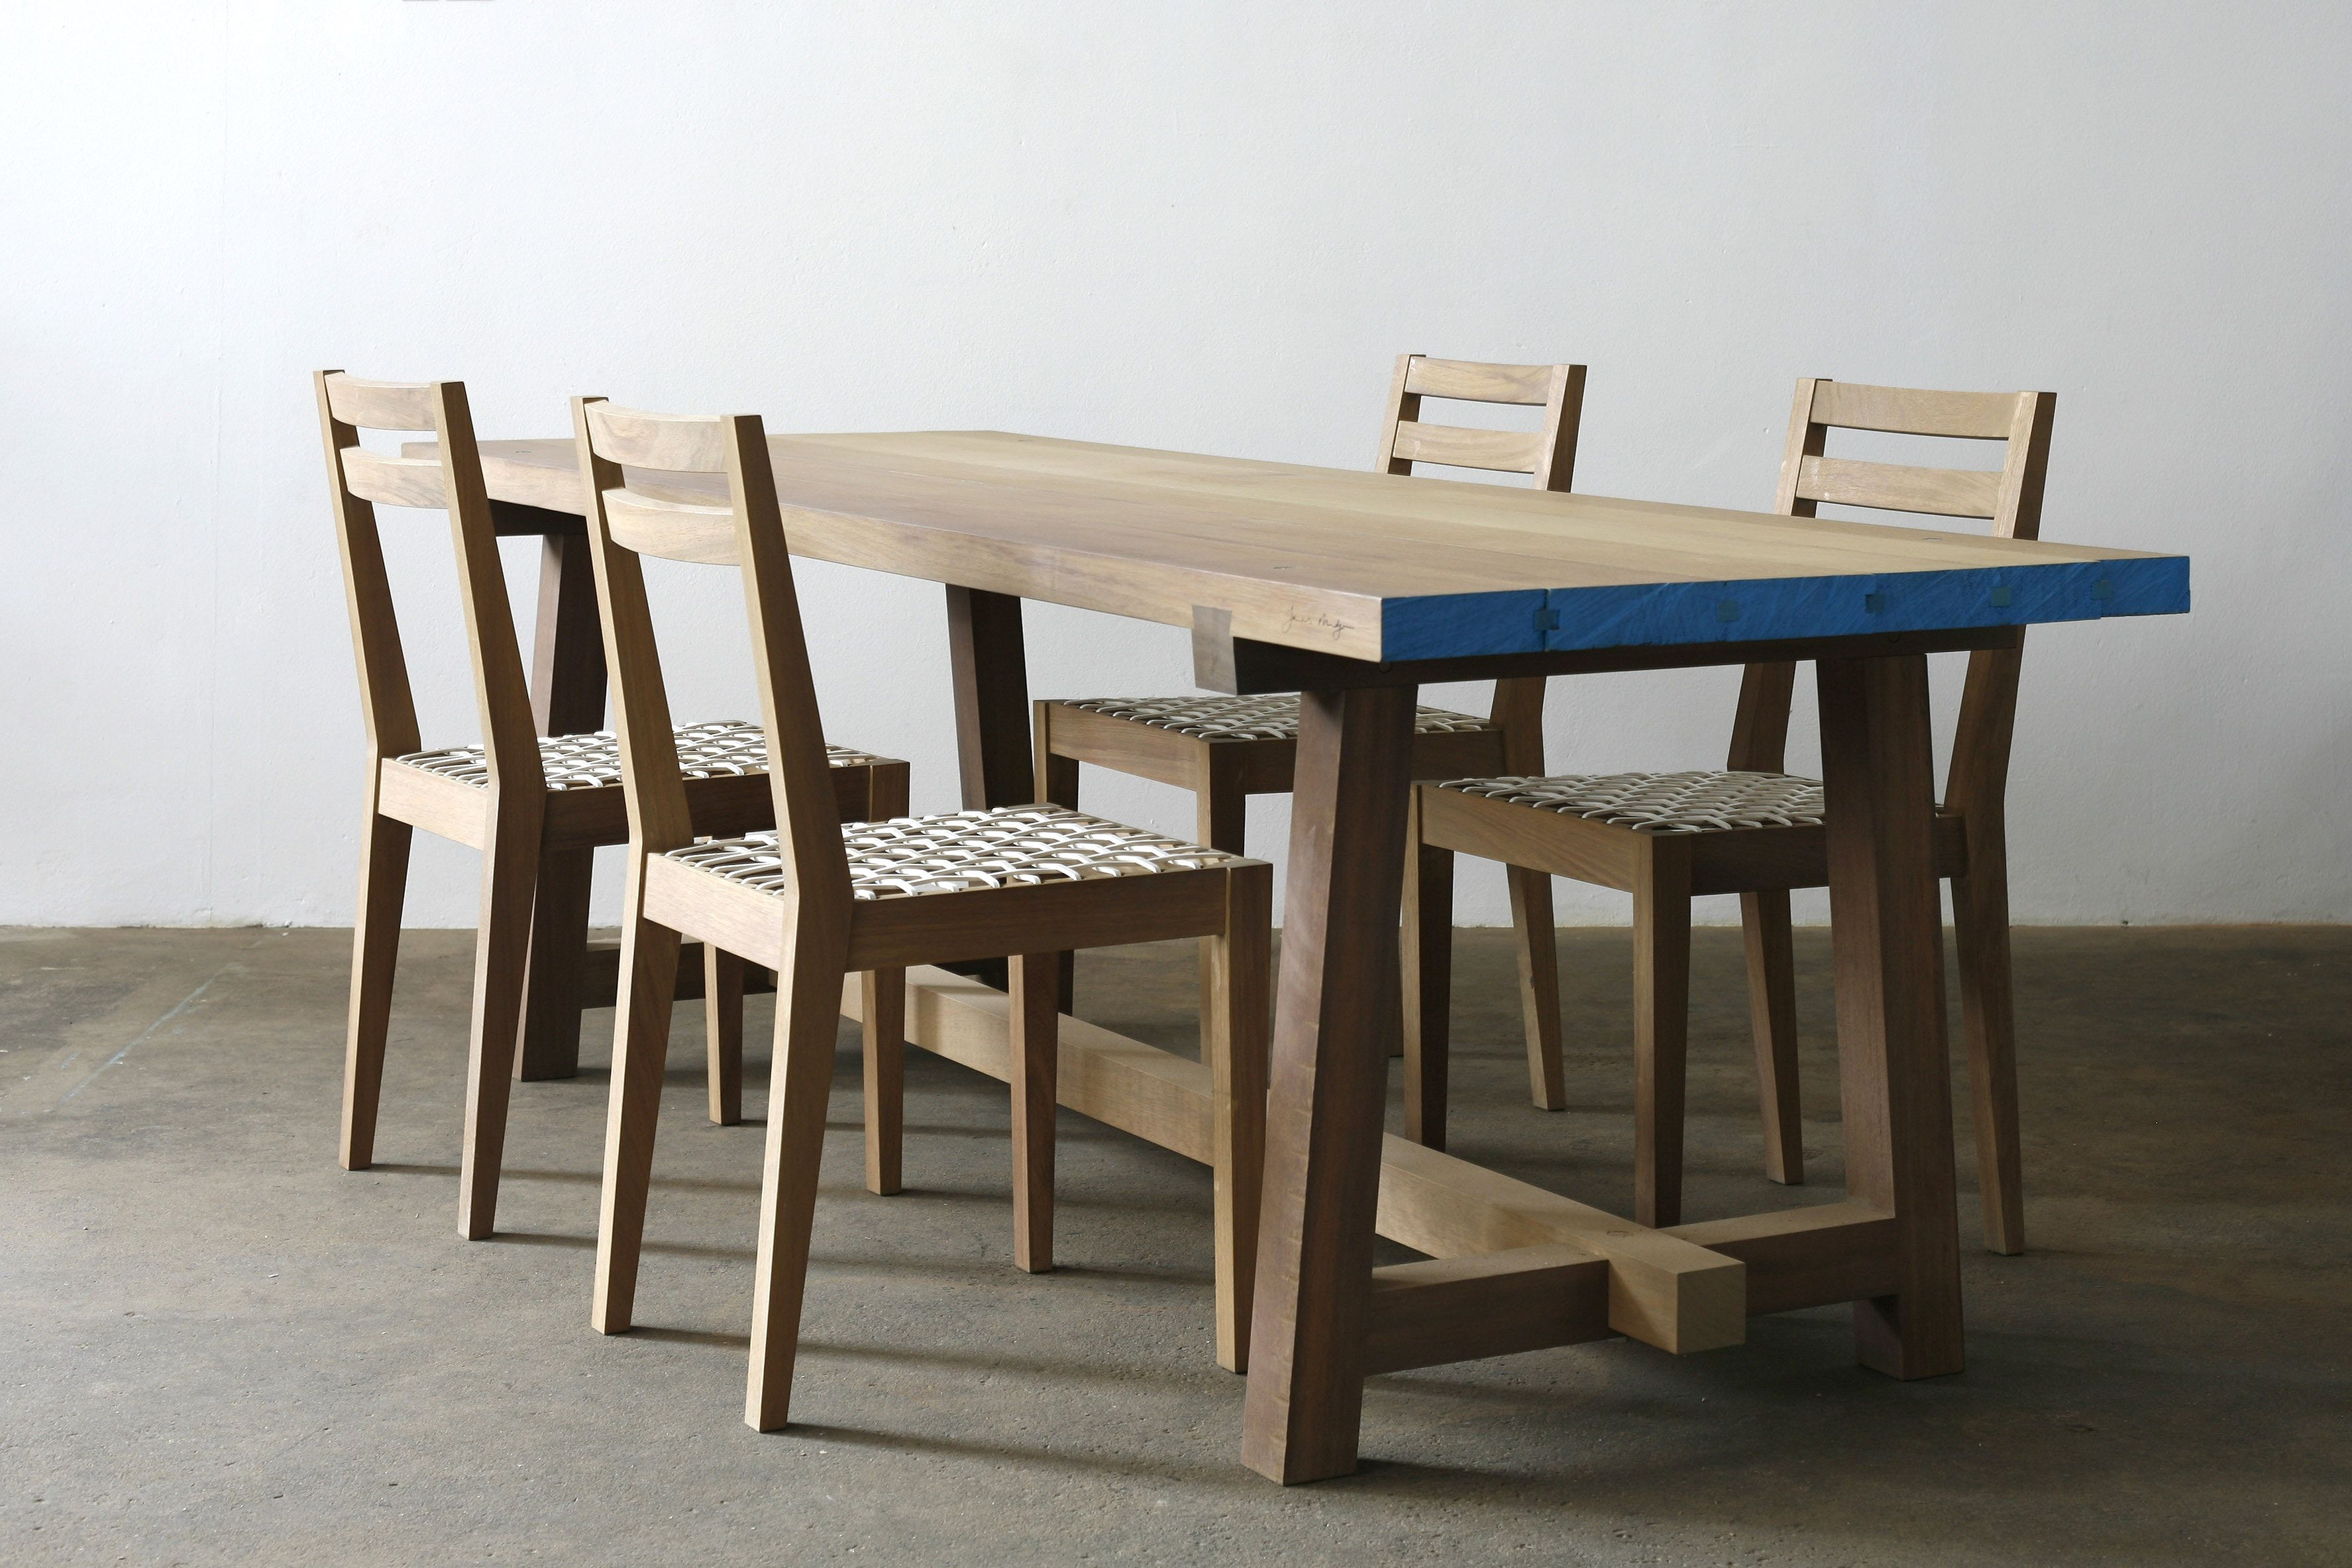 Harvest Outdoor Table By James Mudge